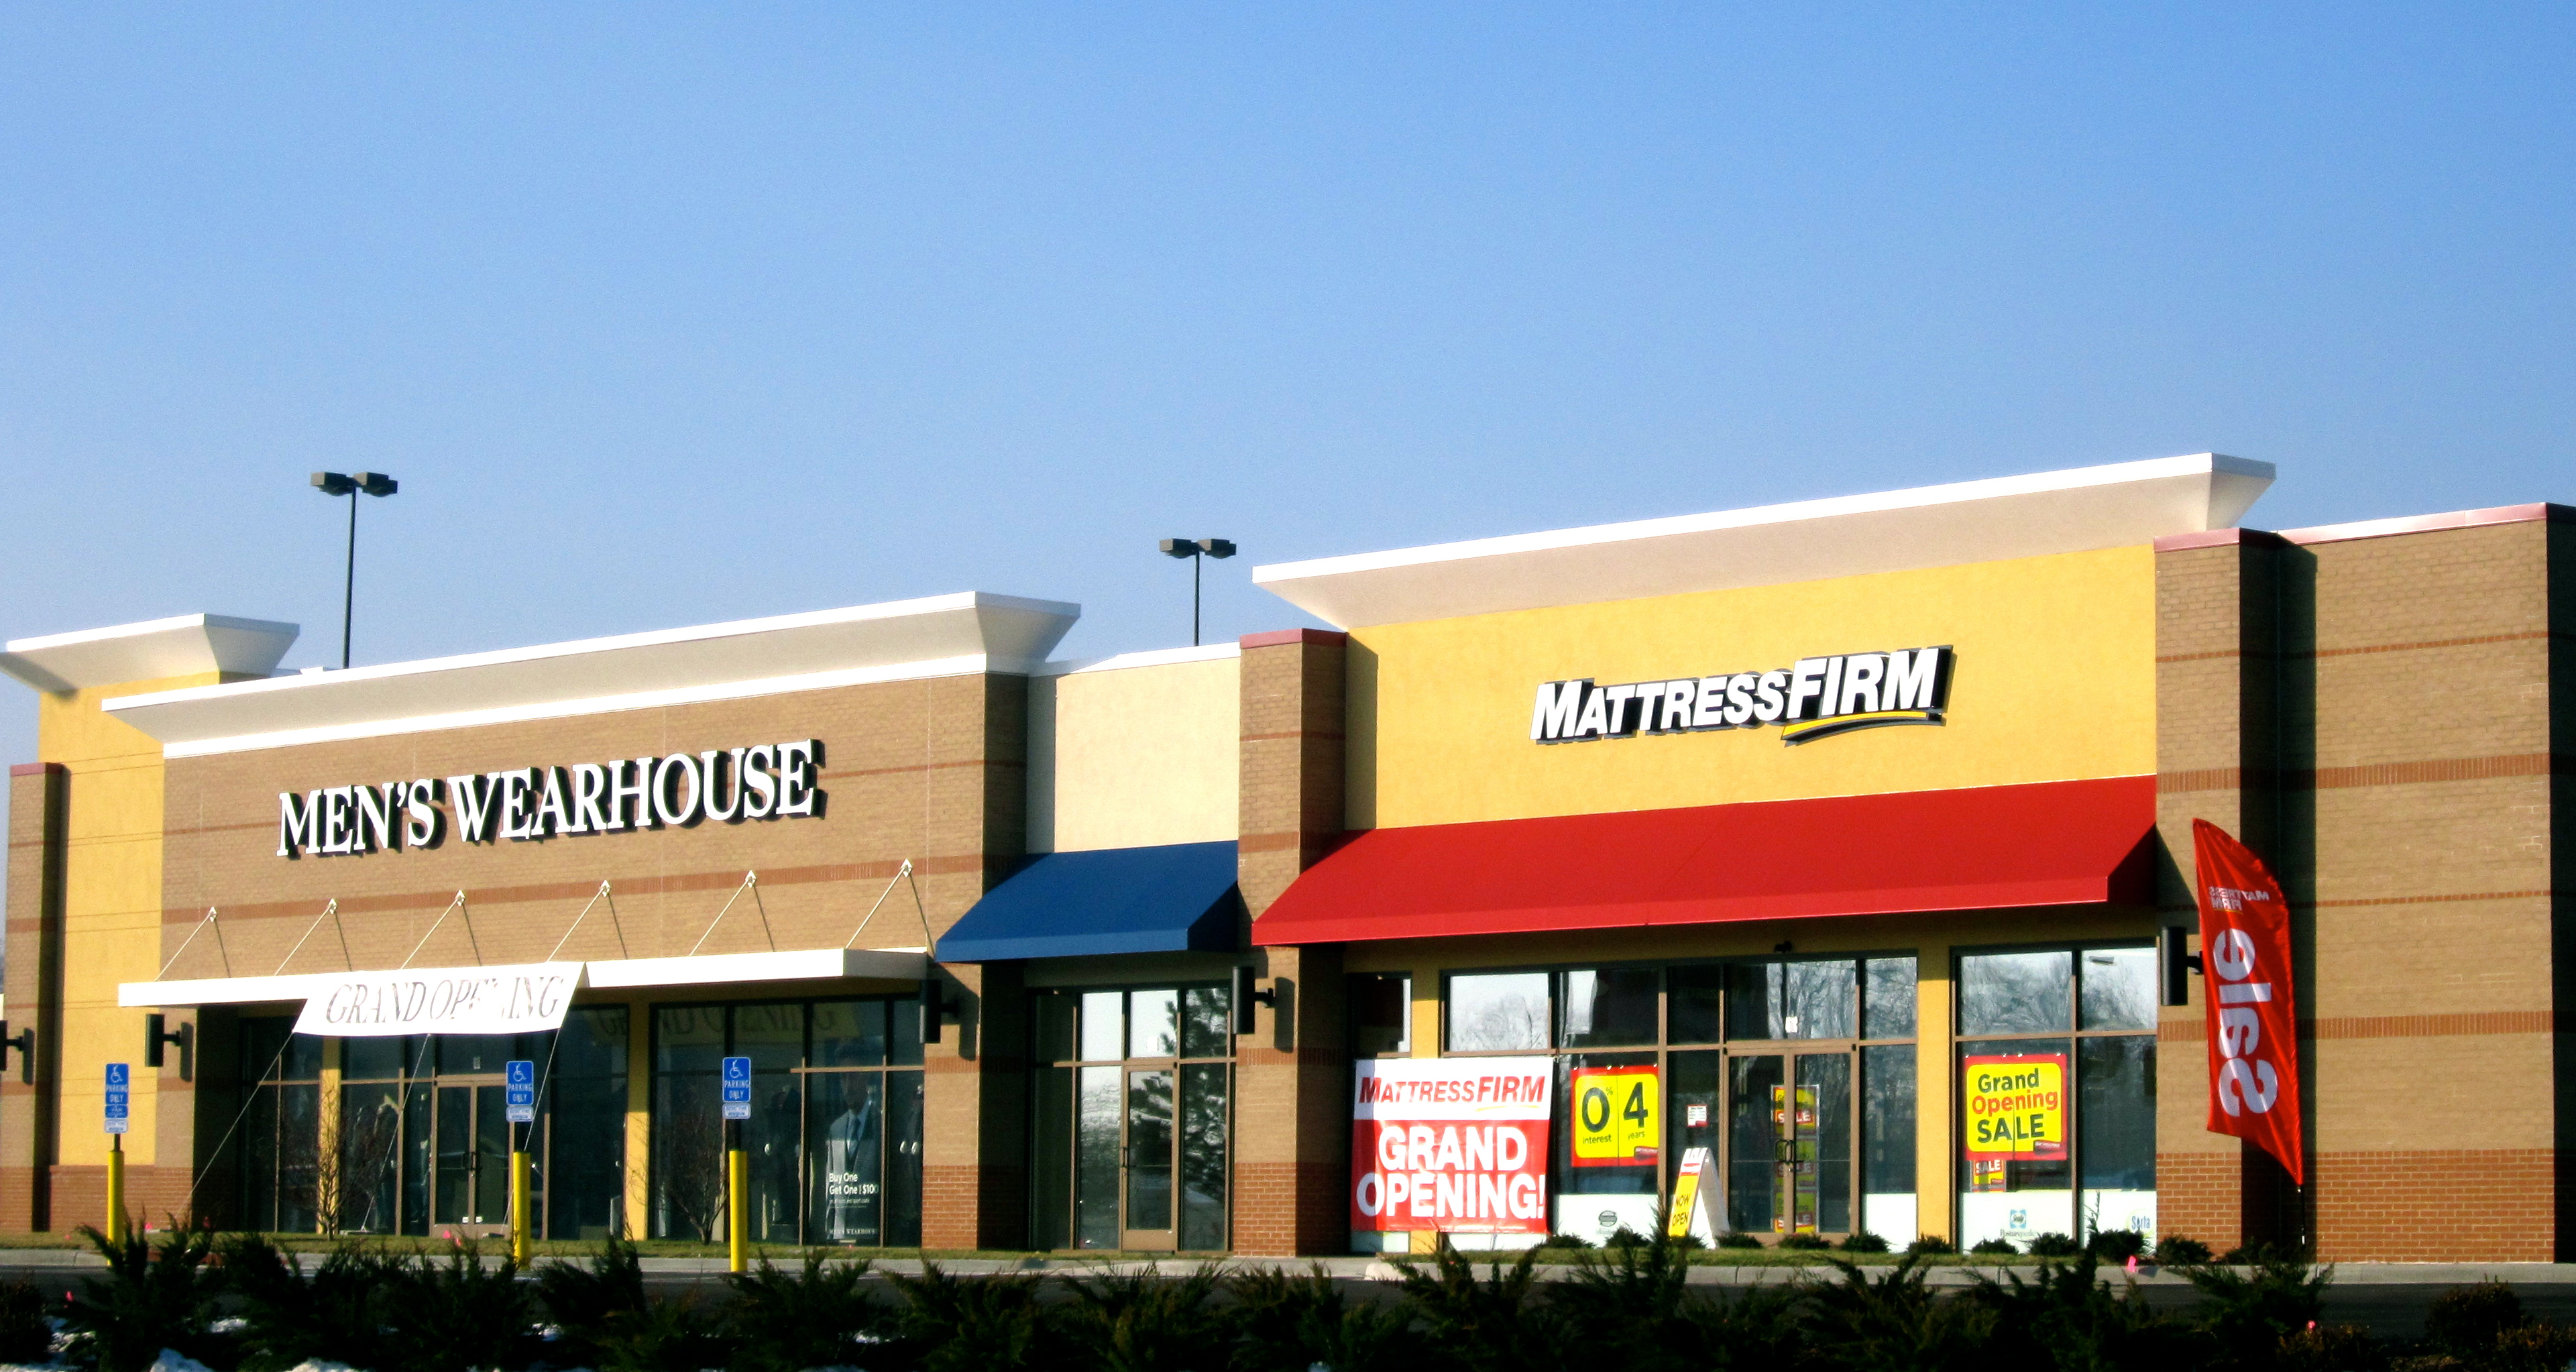 sun ulta vestis blog buildings awning exterior systems commercial screens awnings for solar